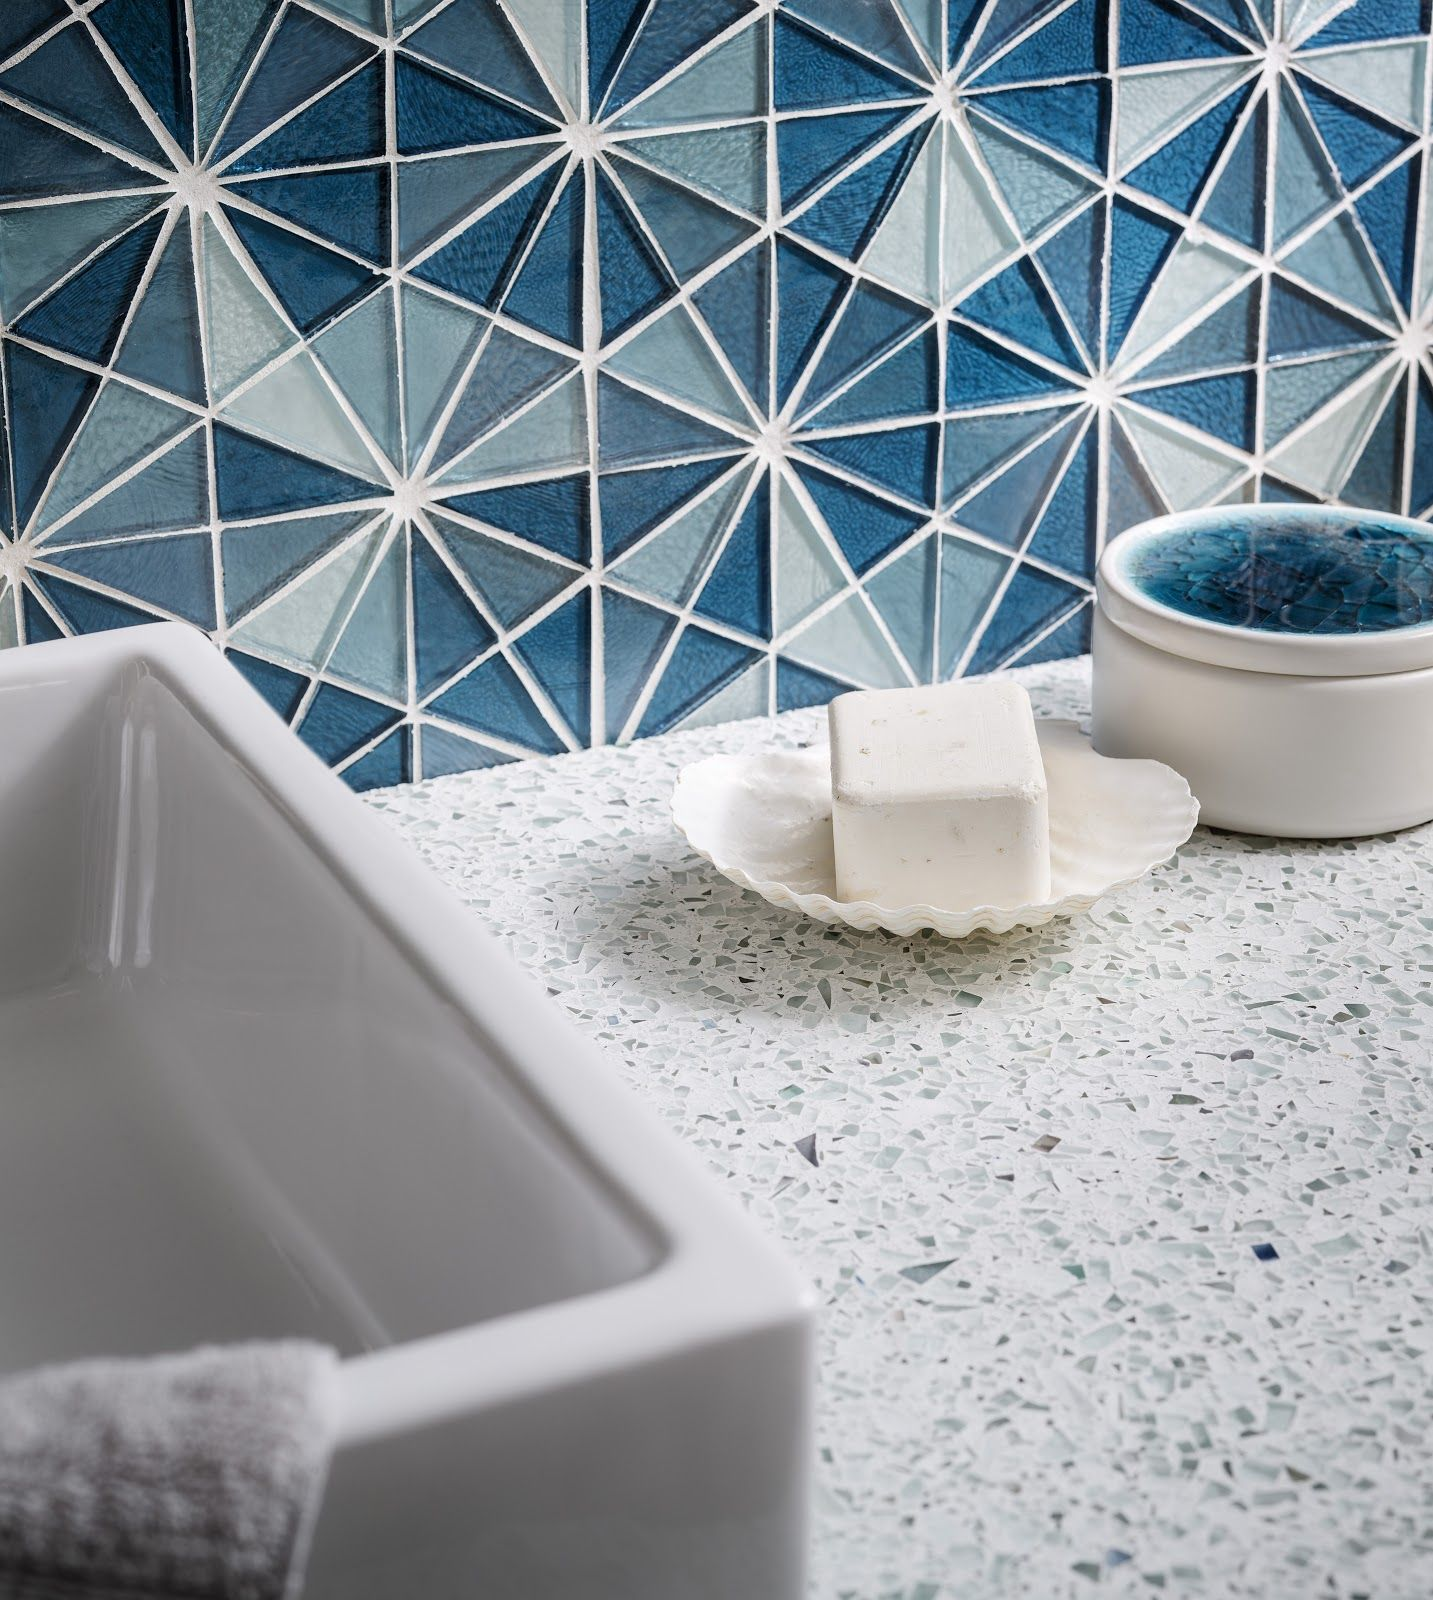 Recycled glass countertops from vetrazzo and recycled glass tiles from oceanside glass tile make the perfect match up of coastal color and sustainability